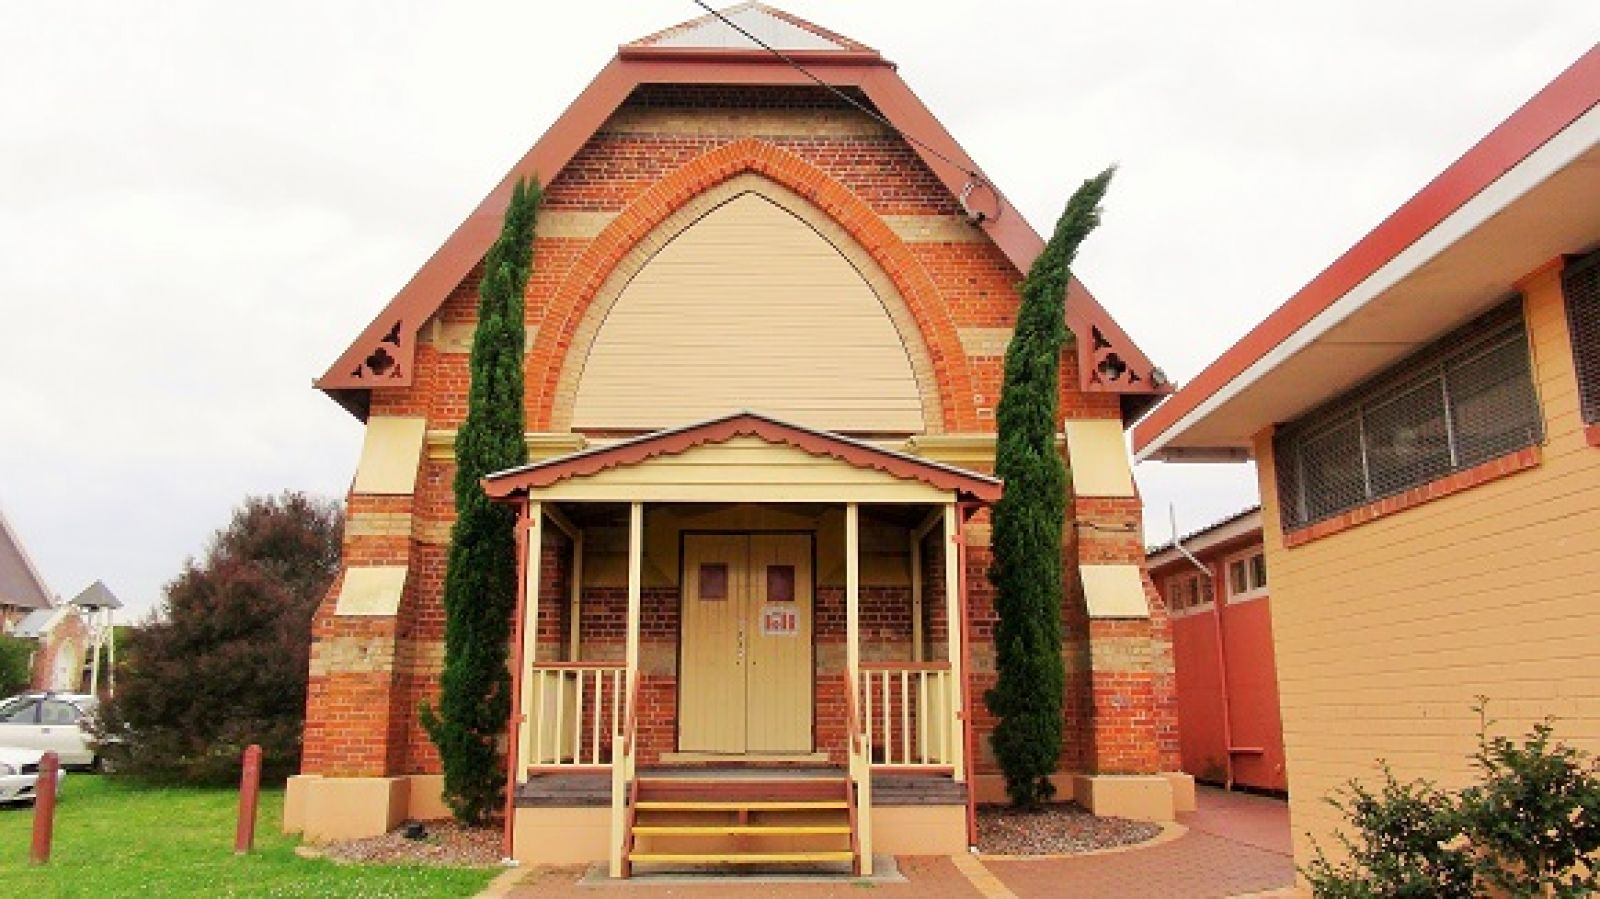 Photo of the front of the Mechanic Institute building in Moruya banner image